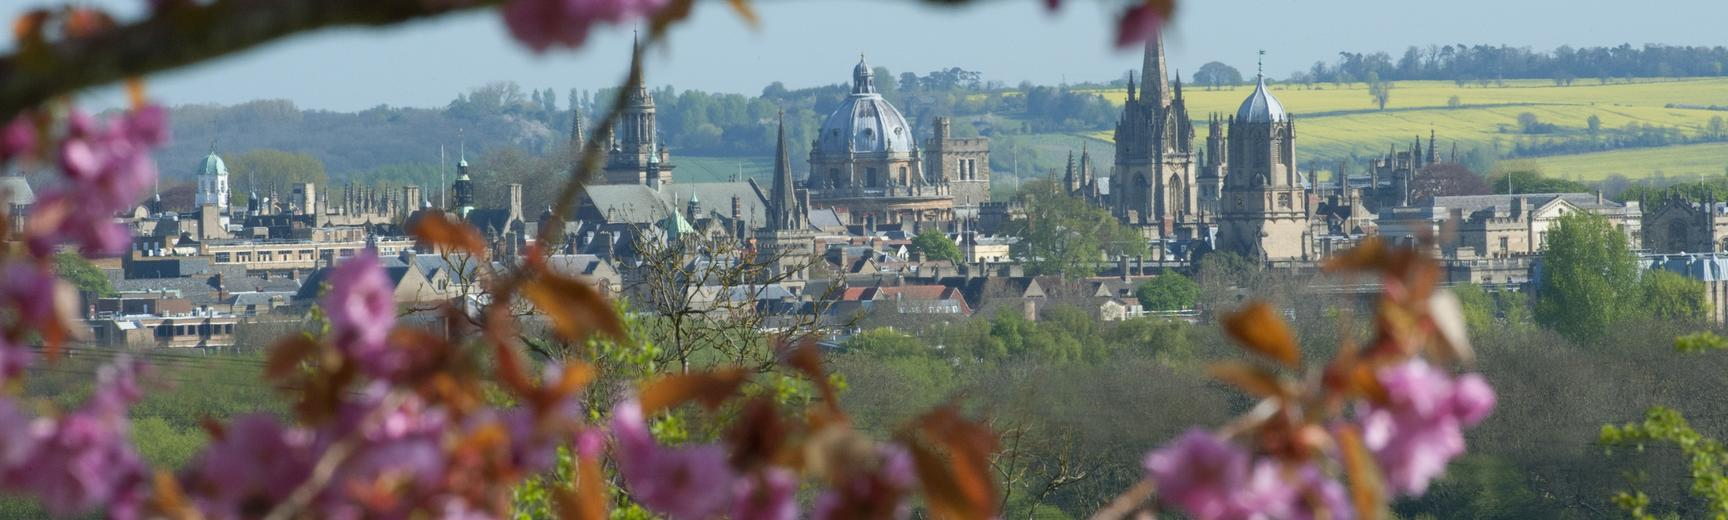 rd oxford skyline with blossom